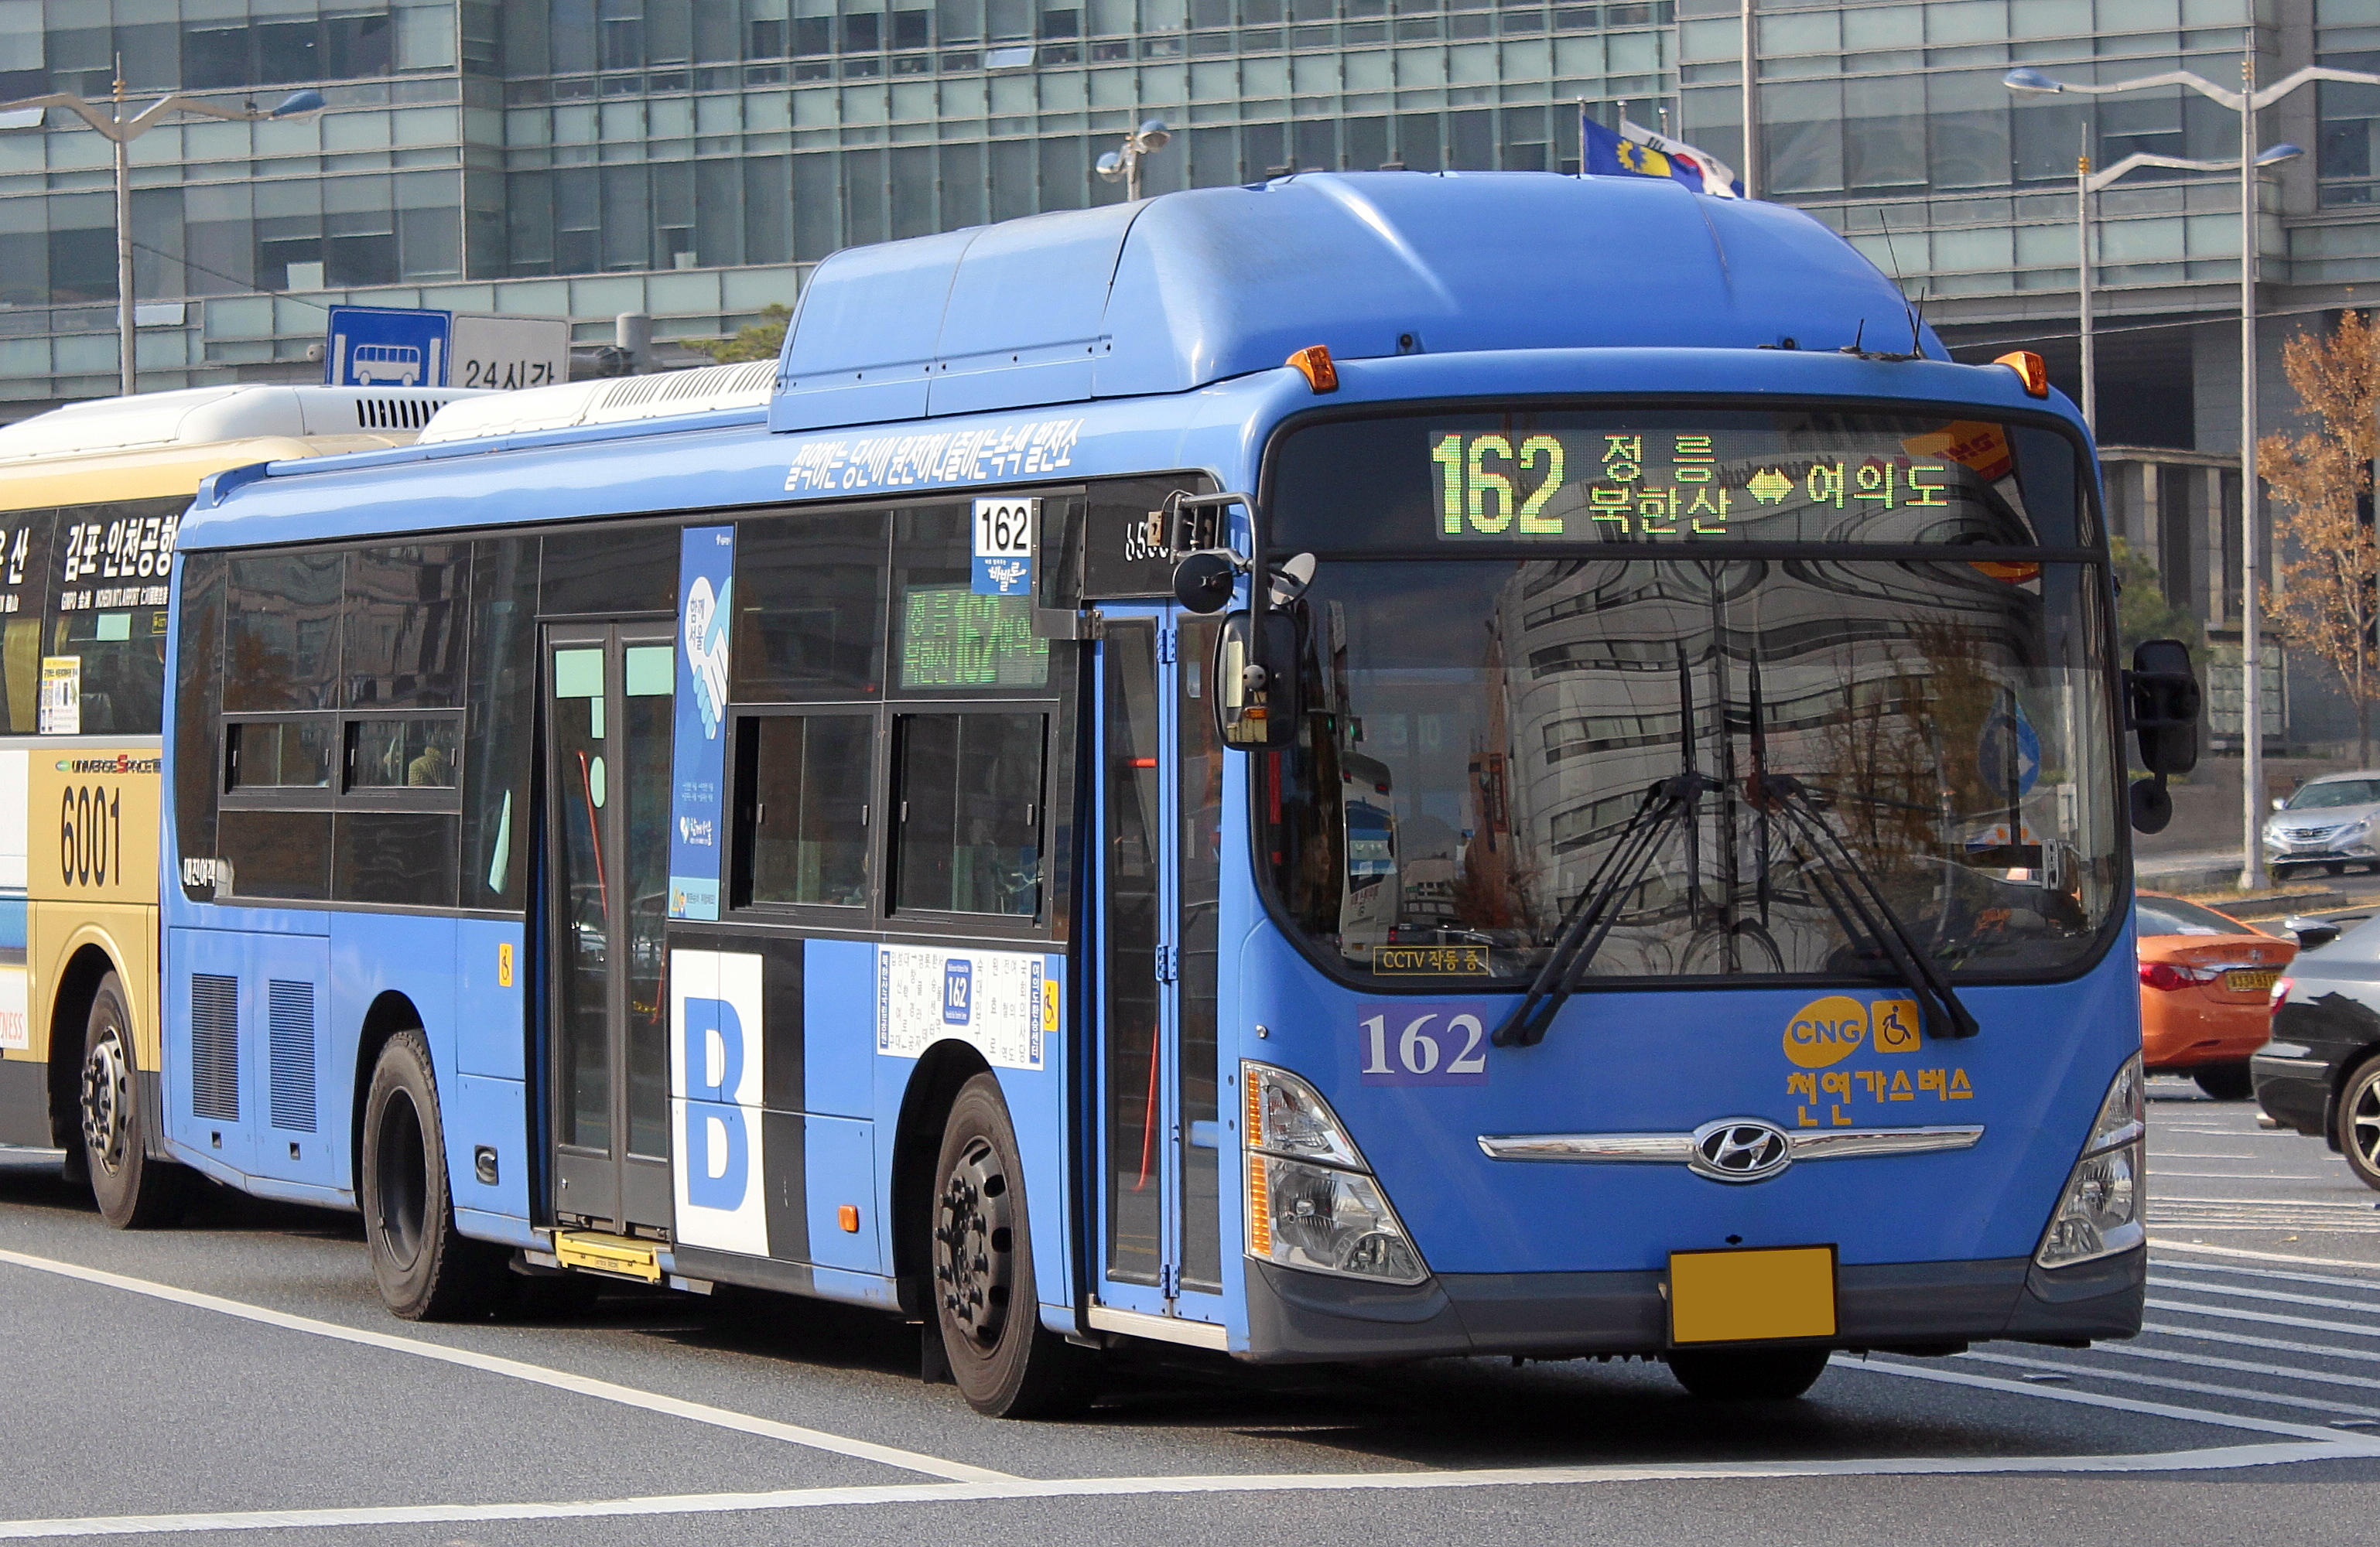 file:seoul bus route 162 - wikimedia commons